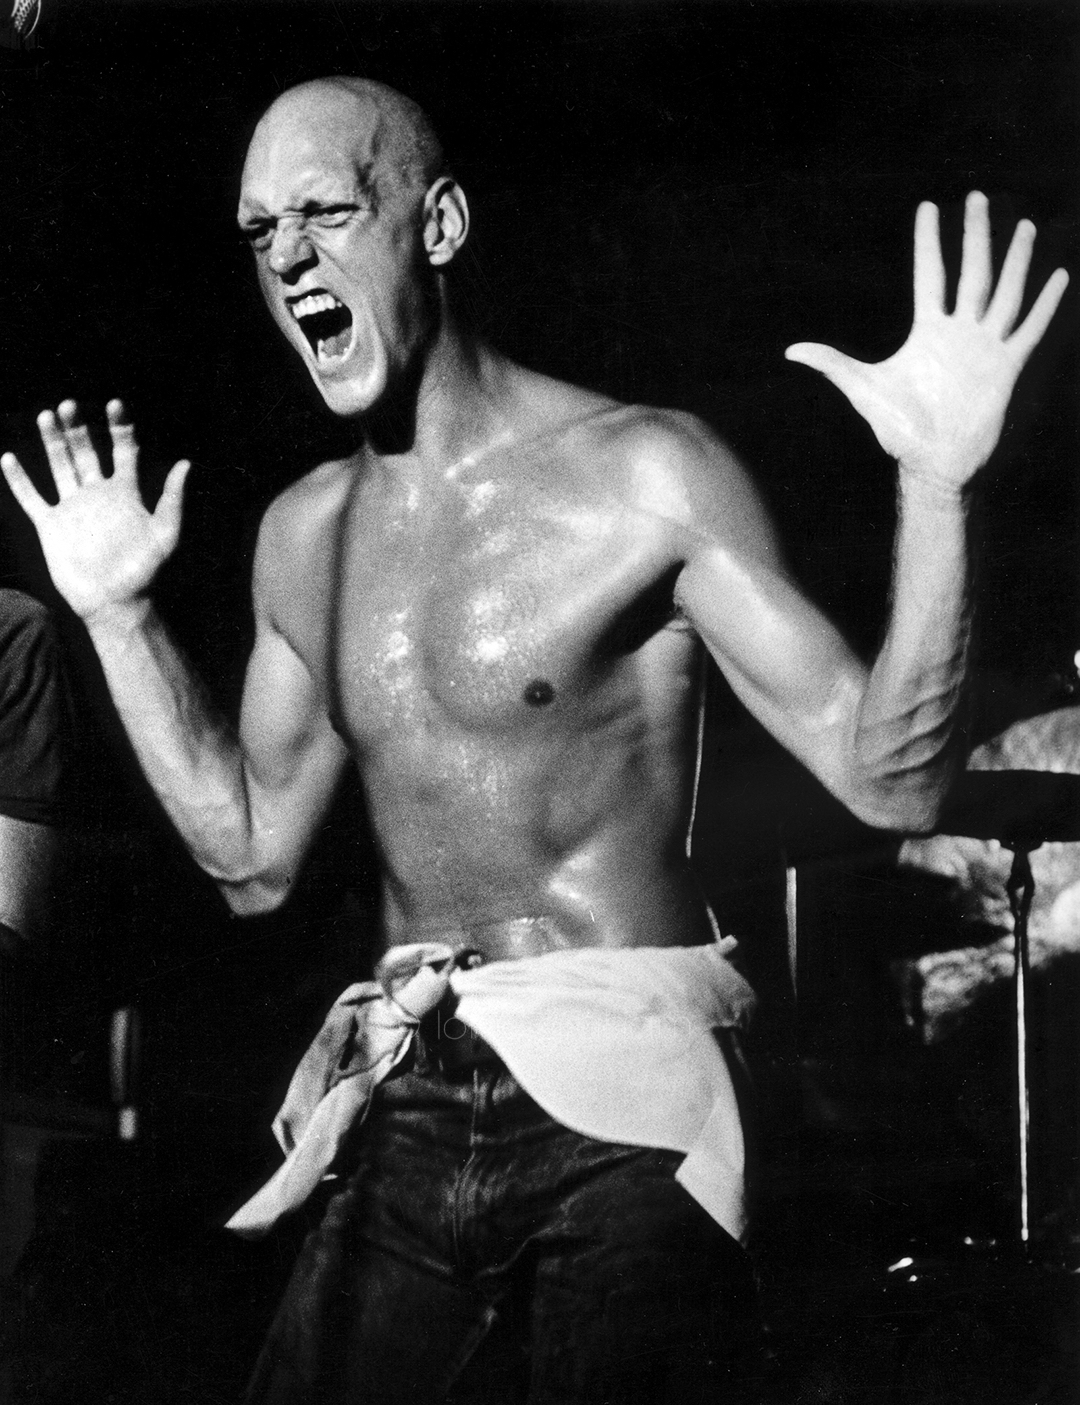 Peter Garrett, Lead singer of Midnight Oil, Sydney, 1983